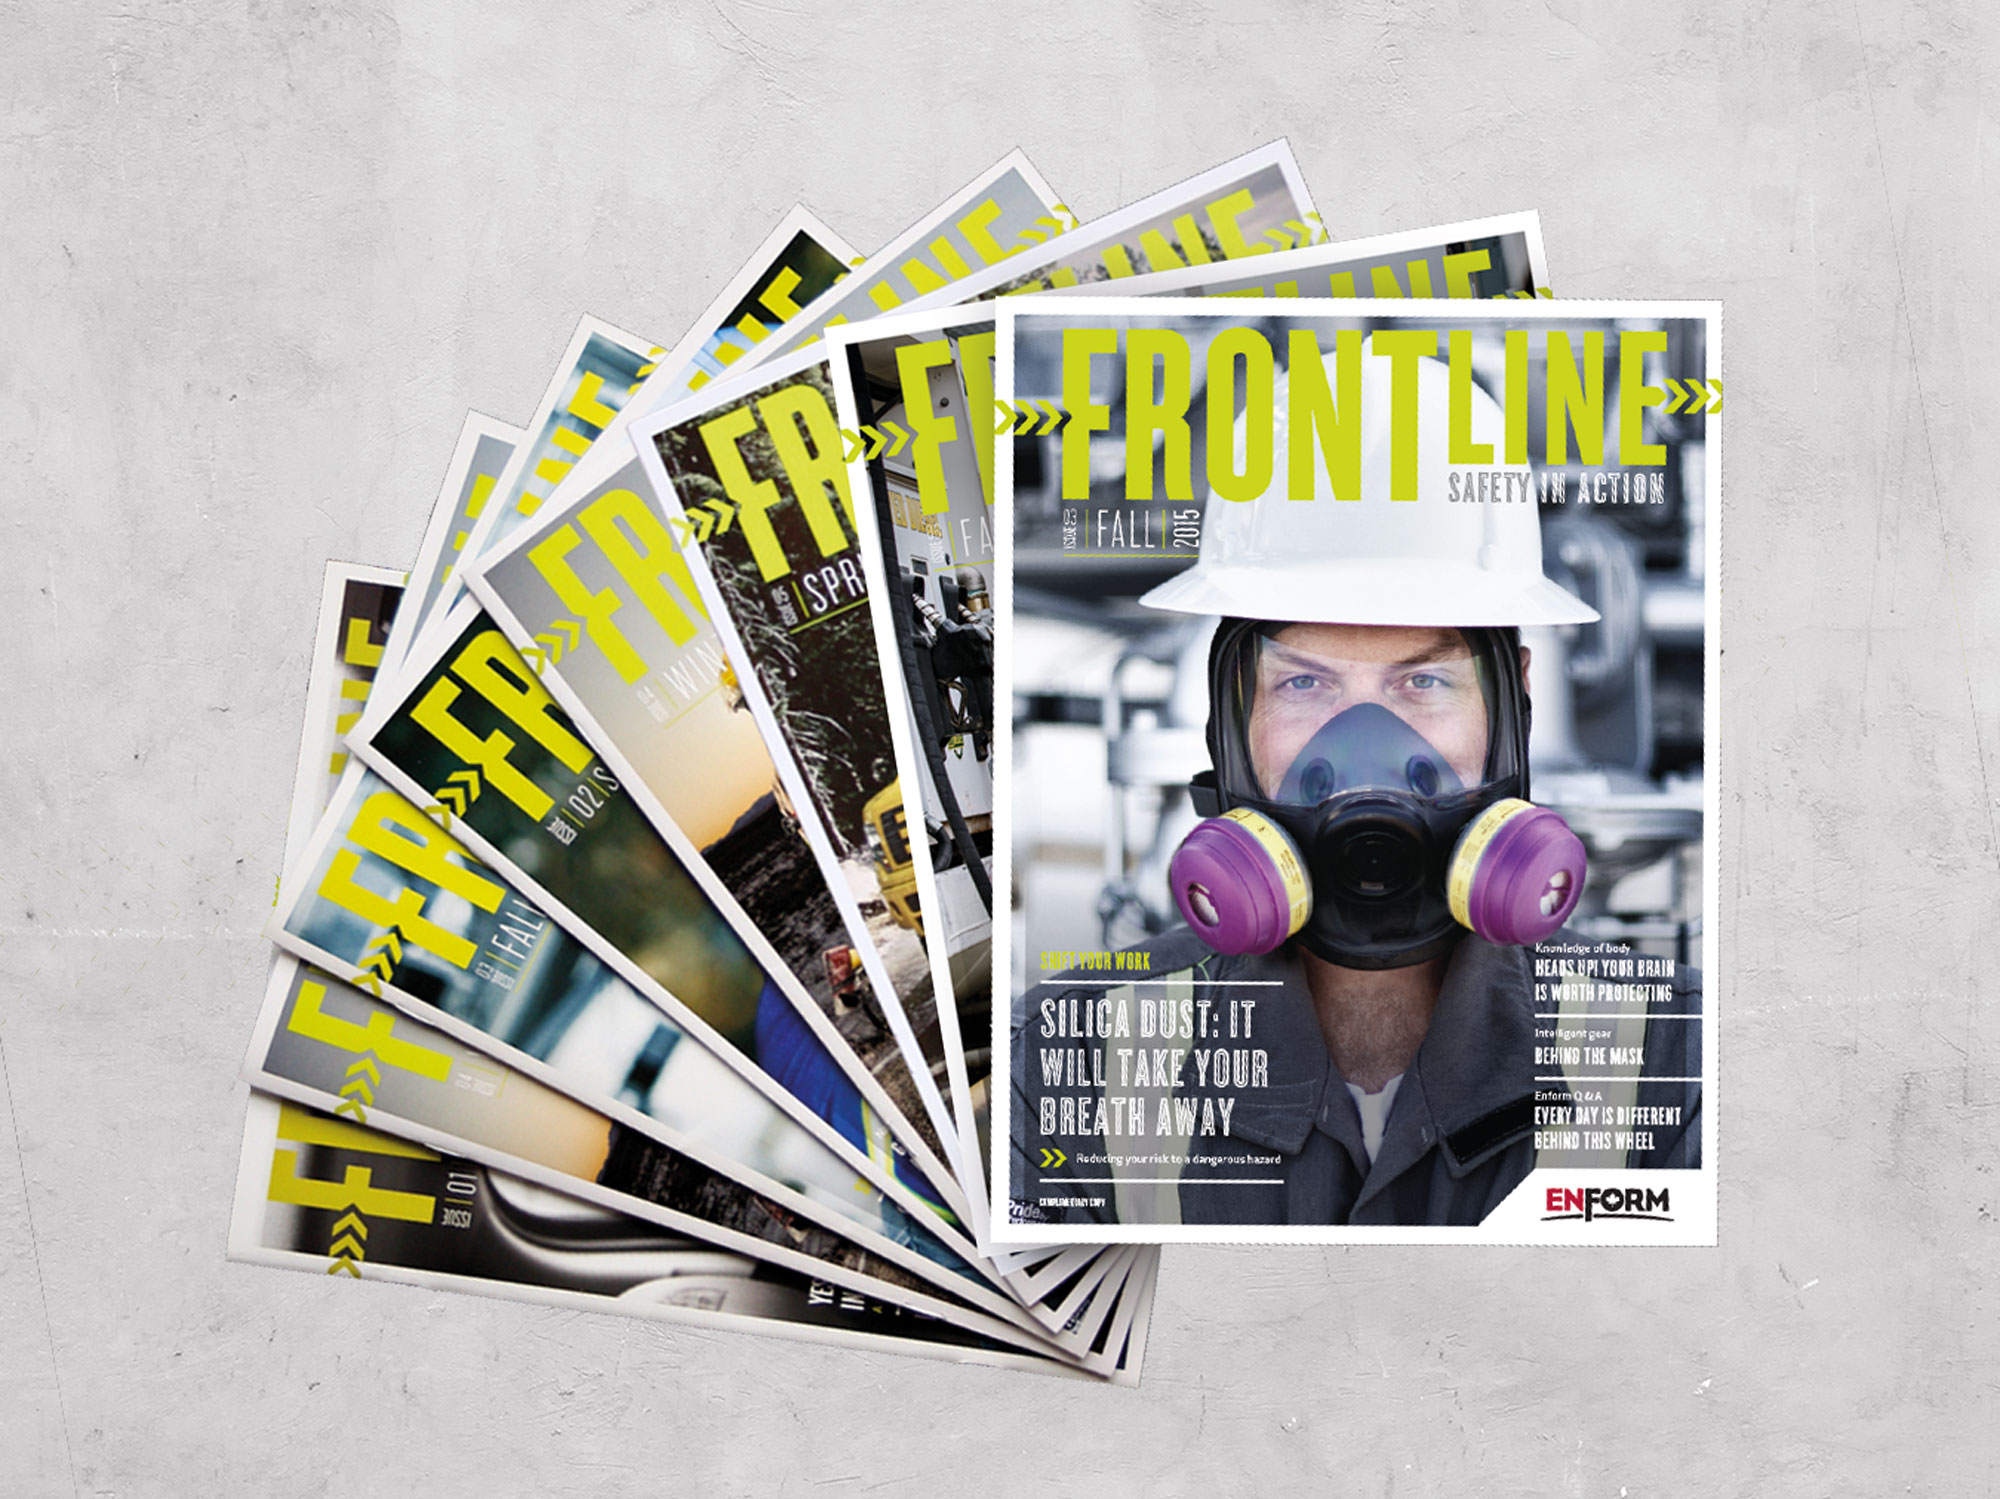 Multiple covers of Frontline Magazine on safety in action published by Energy Safety Canada formerly Enform designed by Studio Forum